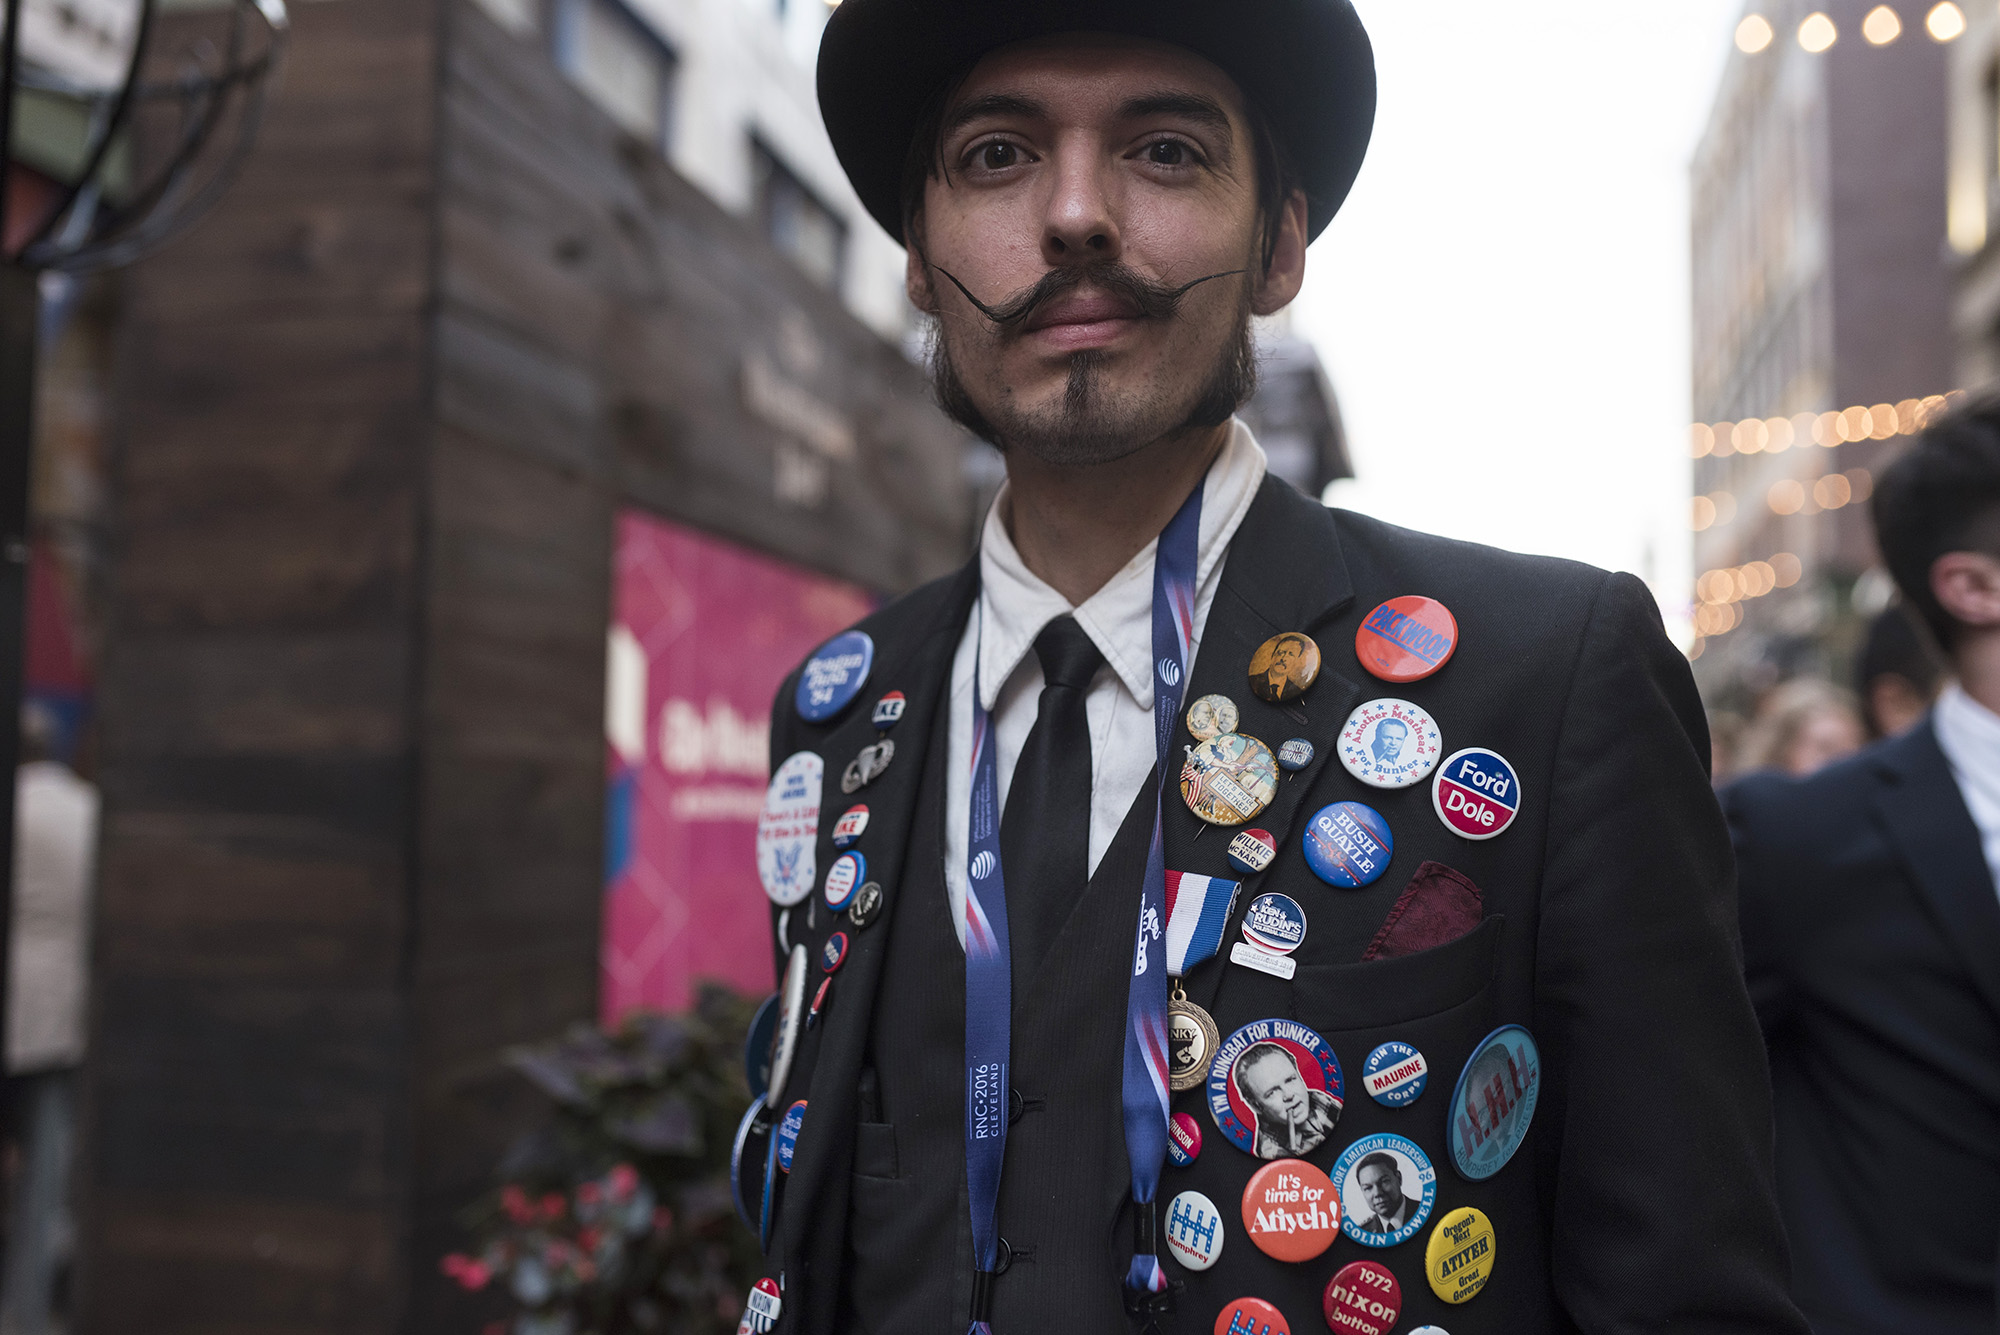 Xander Almcida, a prepublican from Portland, Oregan, who have been collecting Republican presidential nominee pins for years, poses for a portrait on Tuesday July 19th, in Cleveland, Ohio. (G-Jun Yam/The Columbia Chronicle)